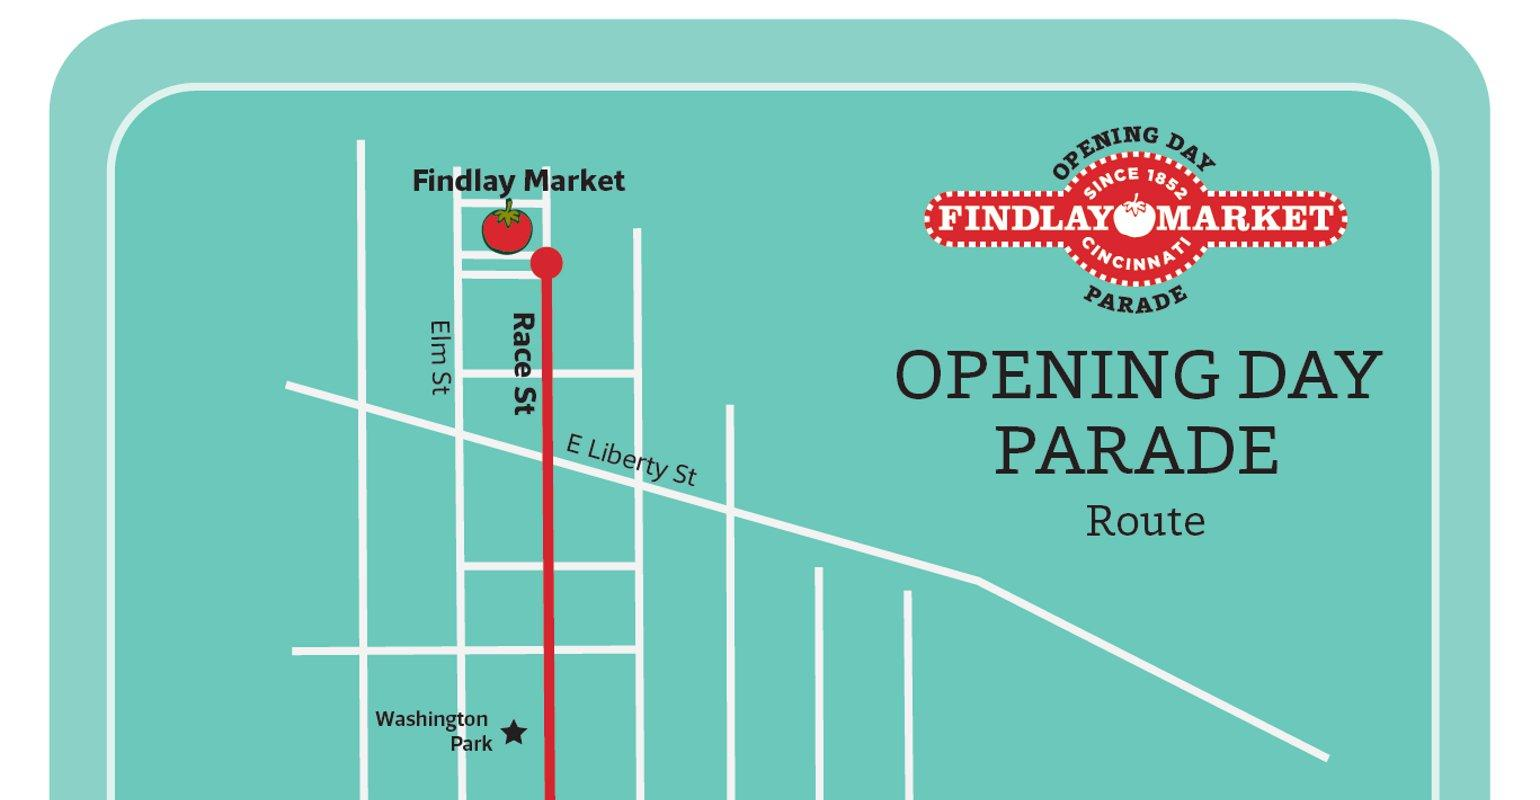 Opening Day Parade Route Findlay Market Parade